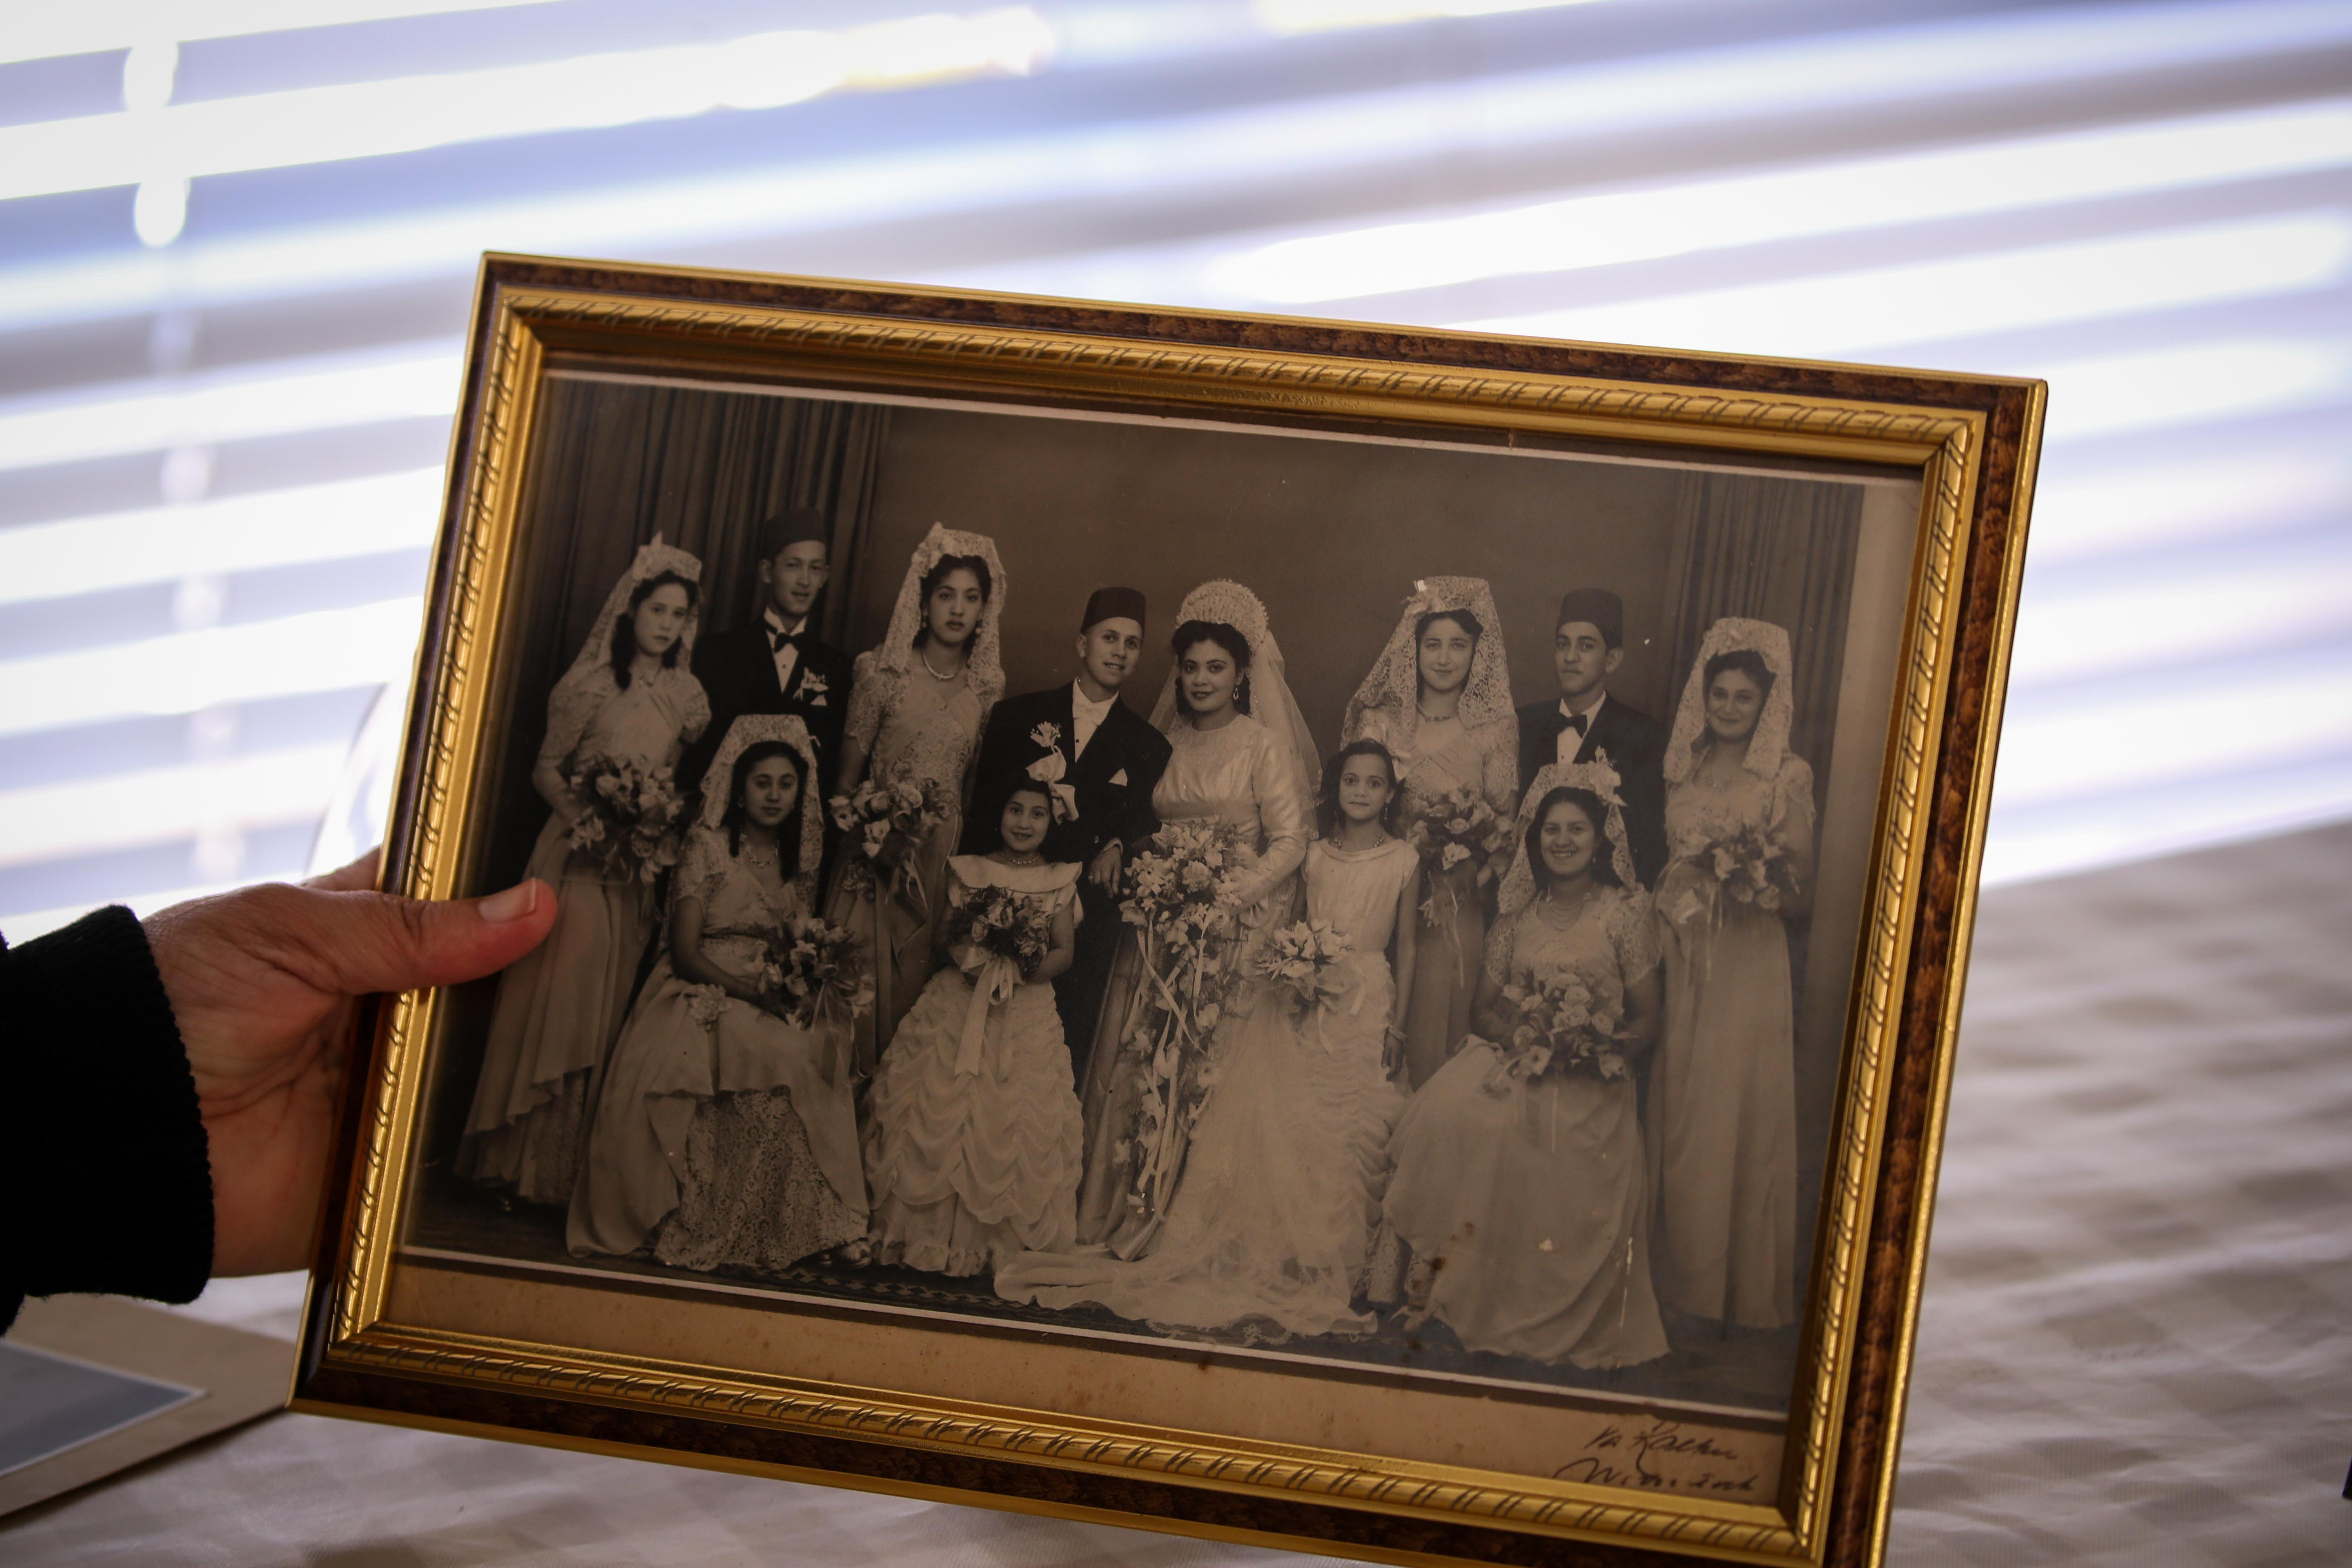 12 September 2019: Fatima Haron-Masoet, daughter of Imam Haron, holds a framed photo of her parents' wedding at the family home in Athlone, Cape Town.